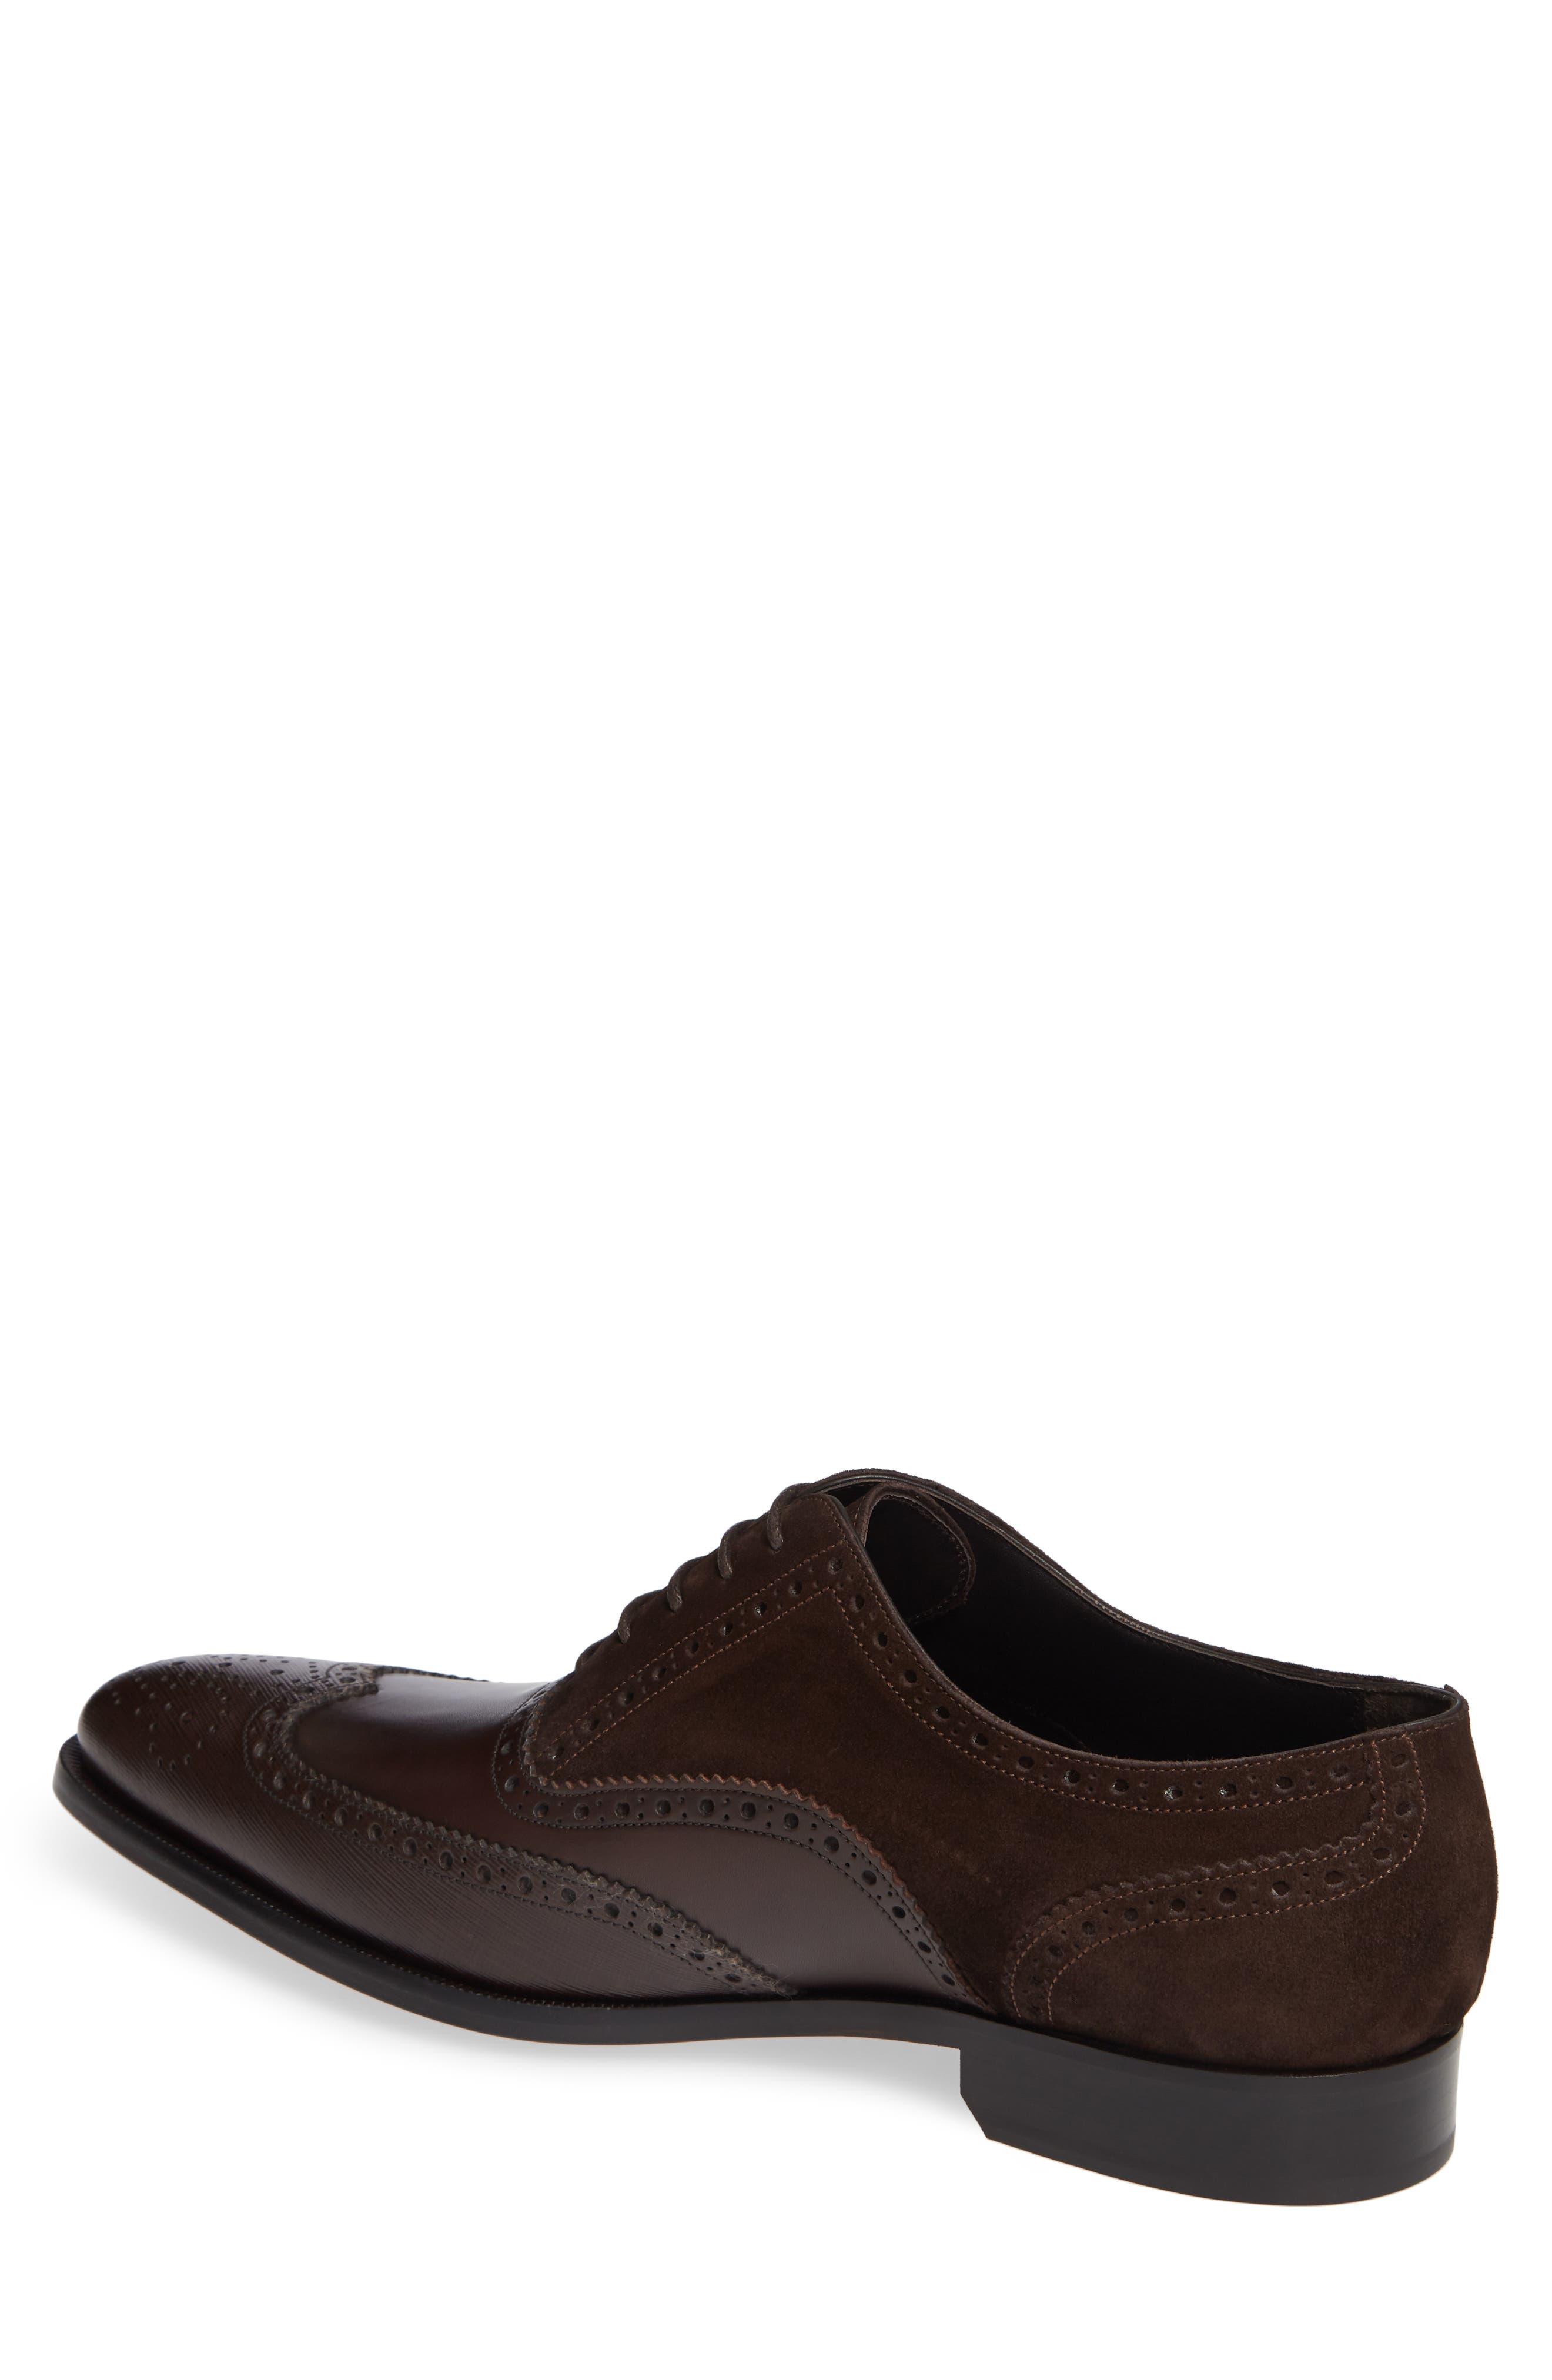 Cologne Wingtip,                             Alternate thumbnail 2, color,                             BROWN SUEDE/ LEATHER